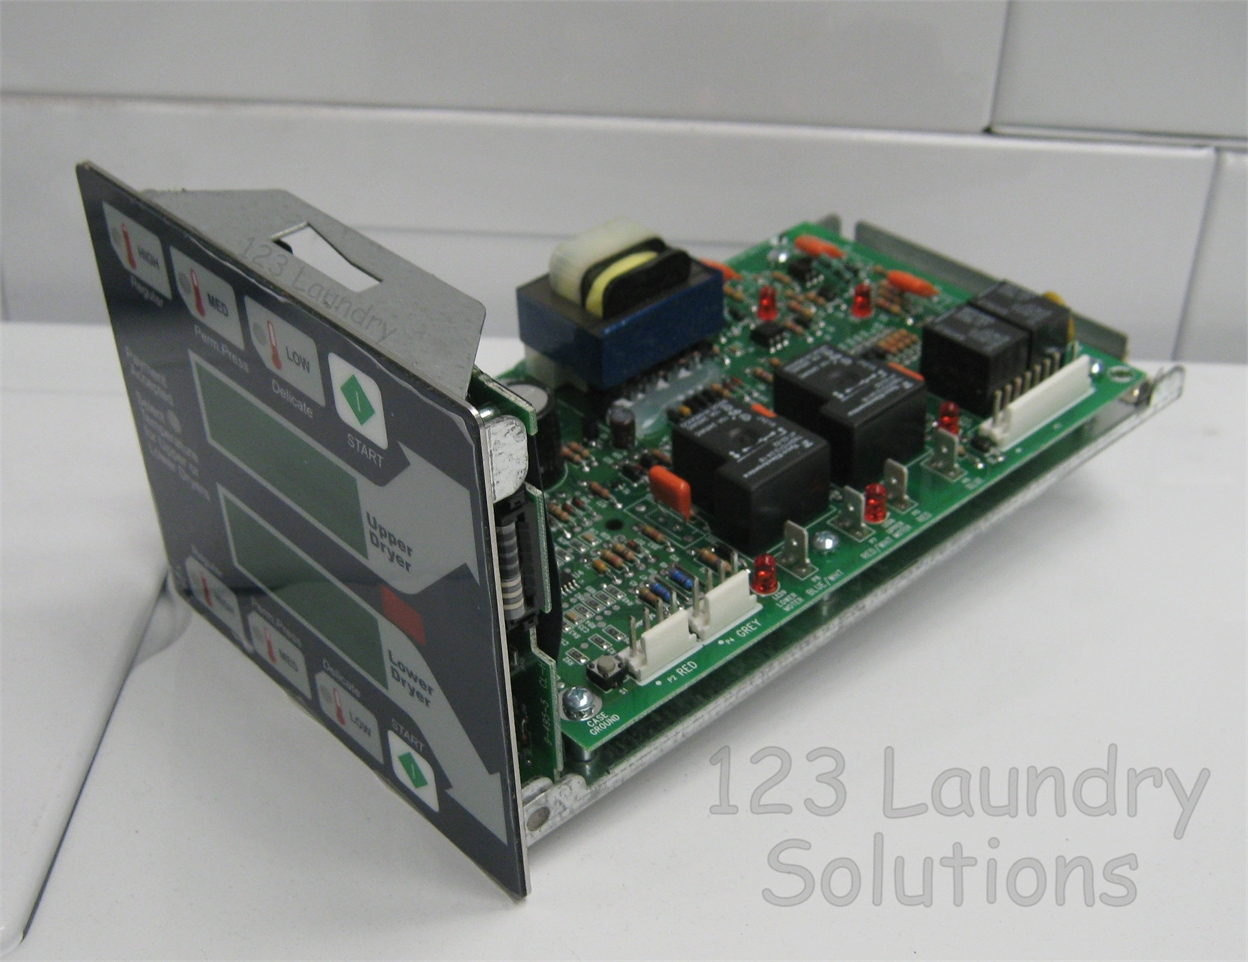 dexter stack dryer control assembly computer board 9857 147 001 dexter stack dryer control assembly computer board 9857 147 001 brand new